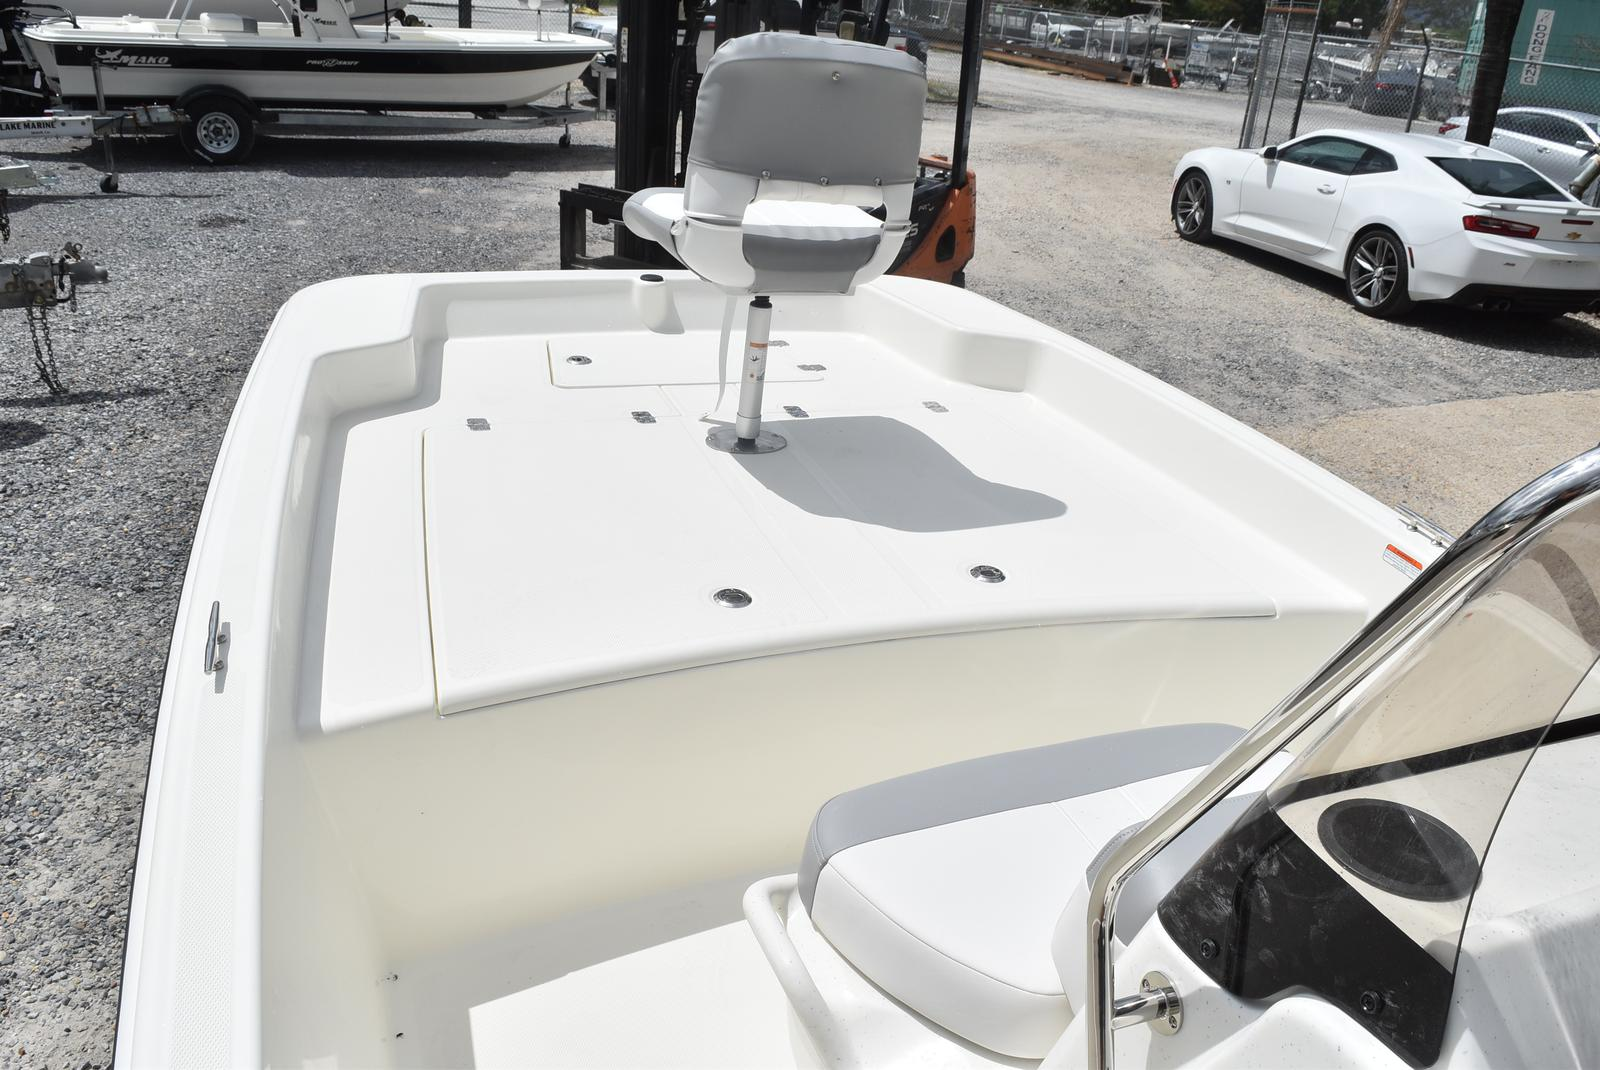 2020 Mako boat for sale, model of the boat is Pro Skiff 17, 75 ELPT & Image # 430 of 702